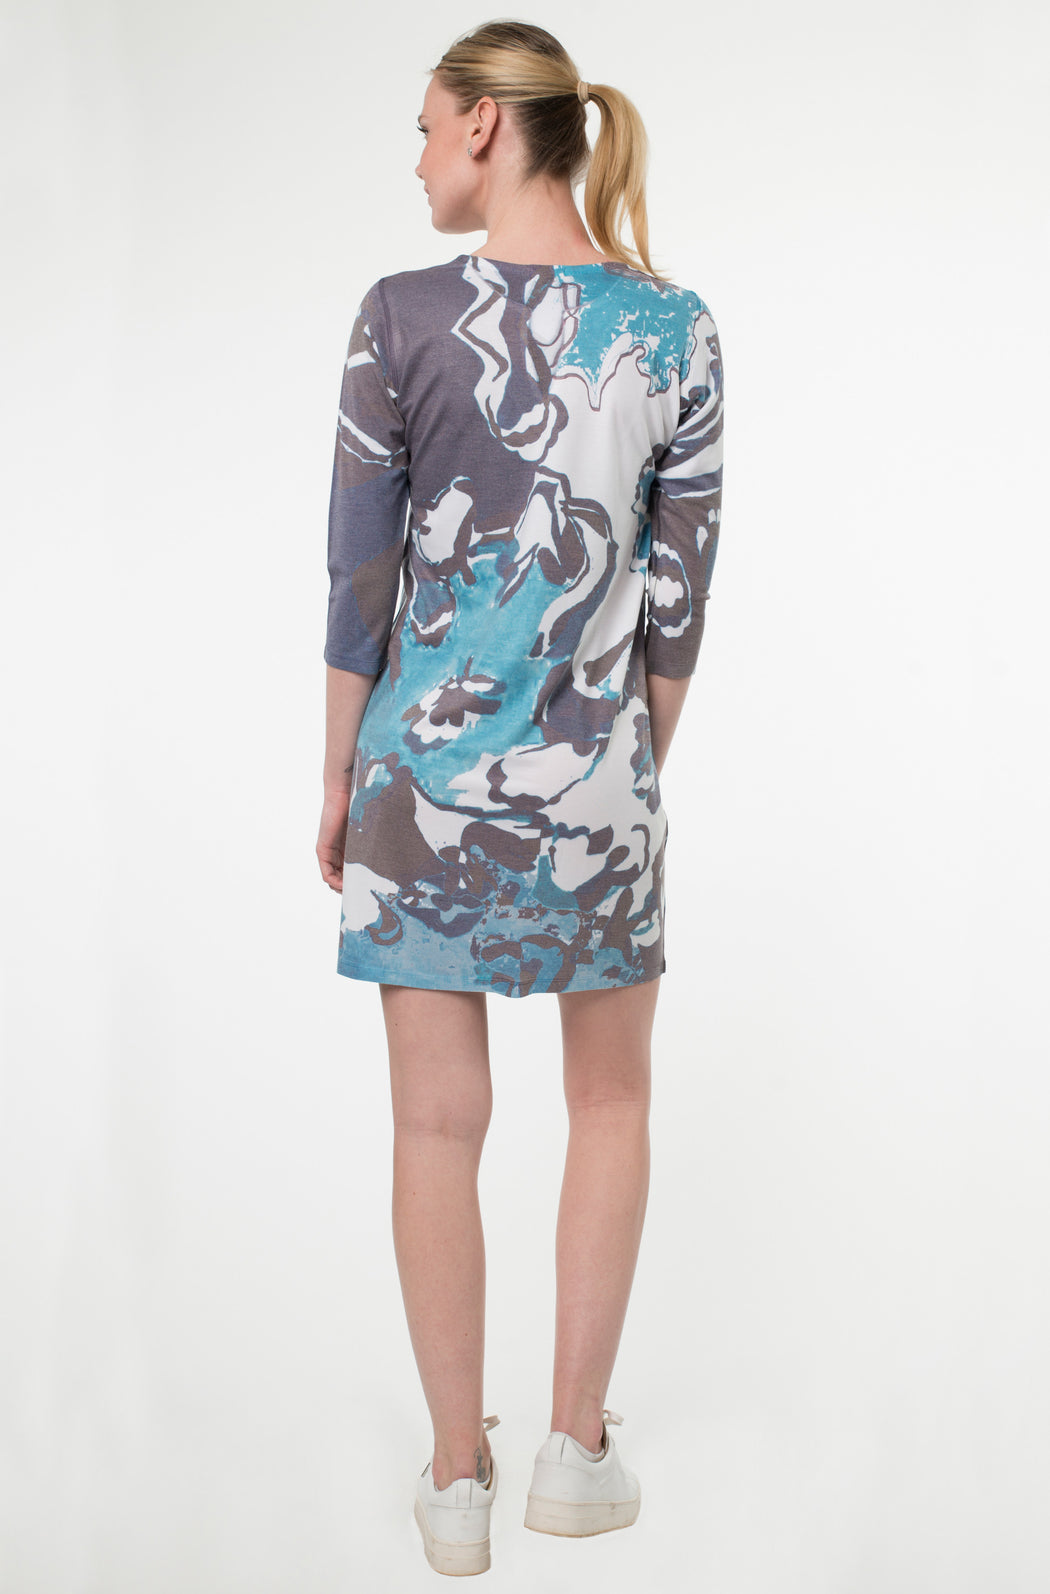 Hawaiian Notch Neck Dress in Eau Print - Atelier5